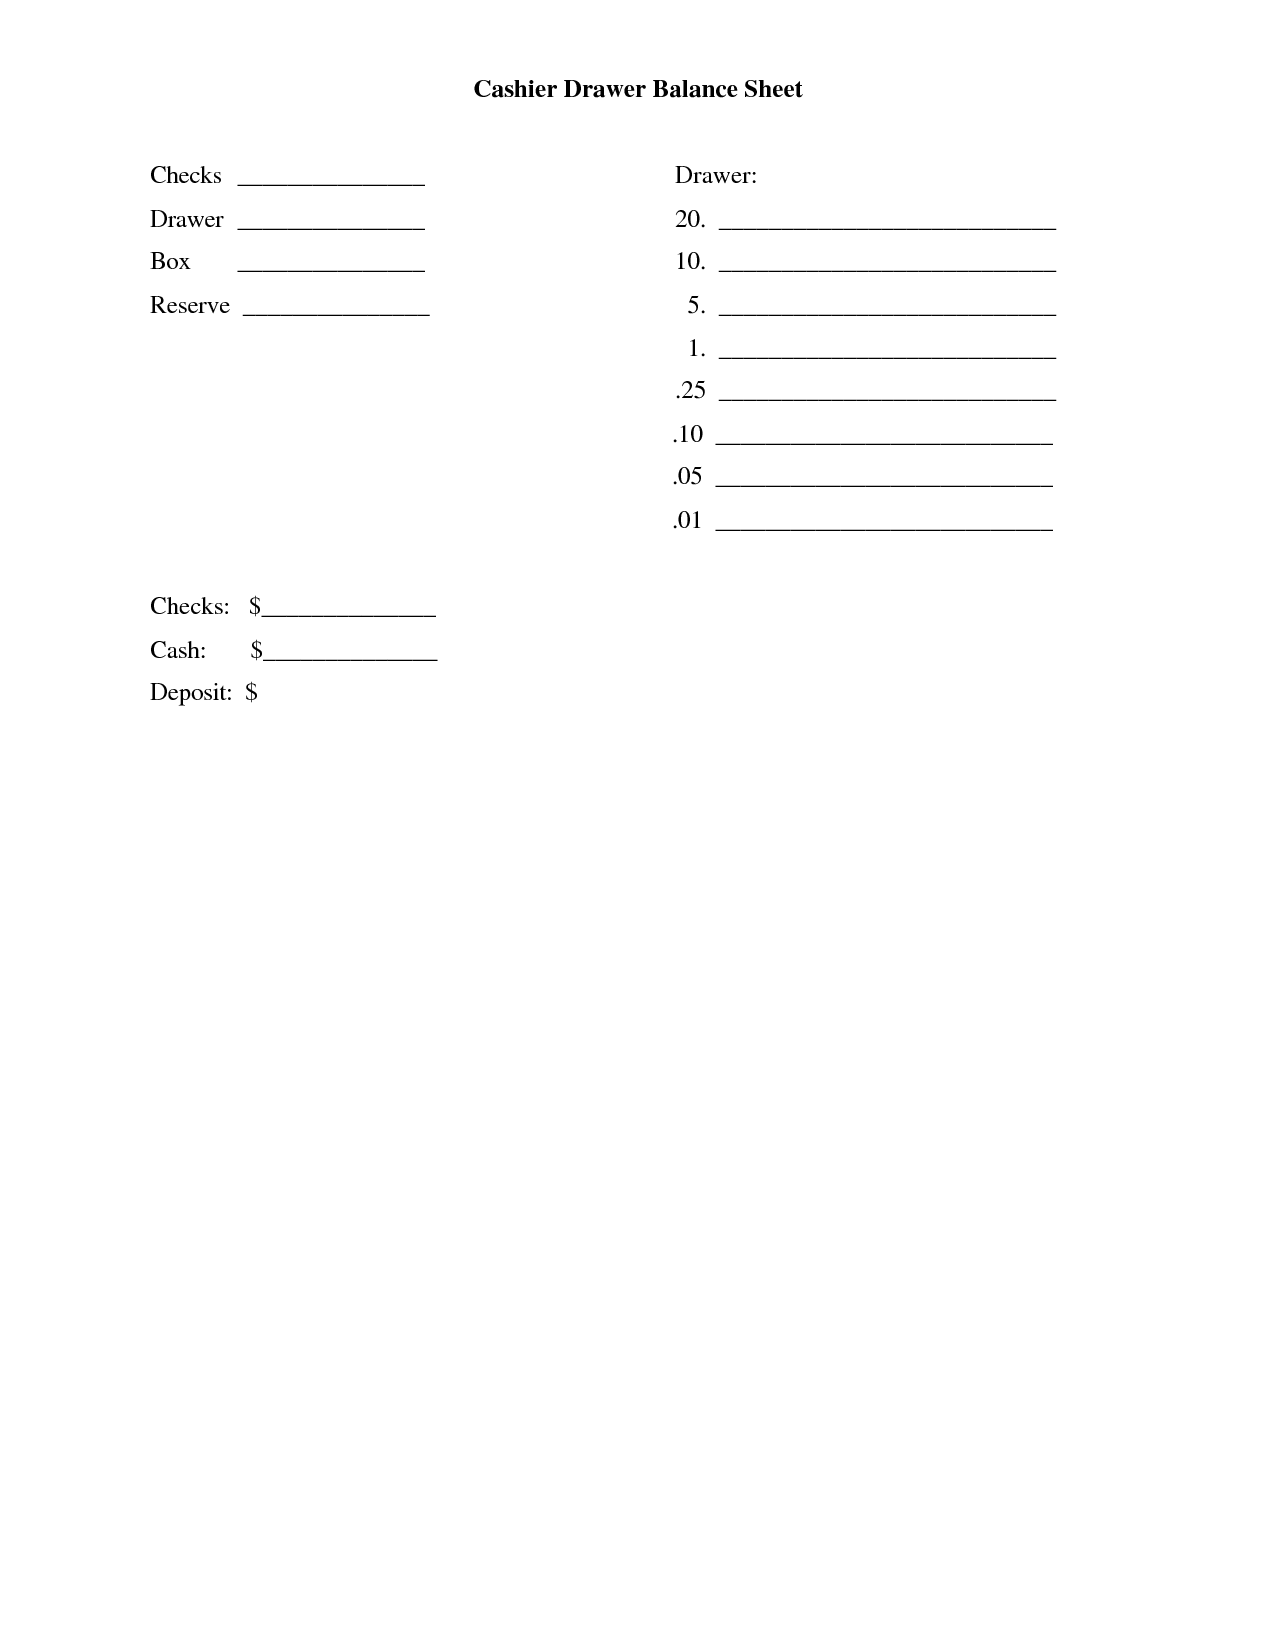 Cash Drawer Balance Sheet Template